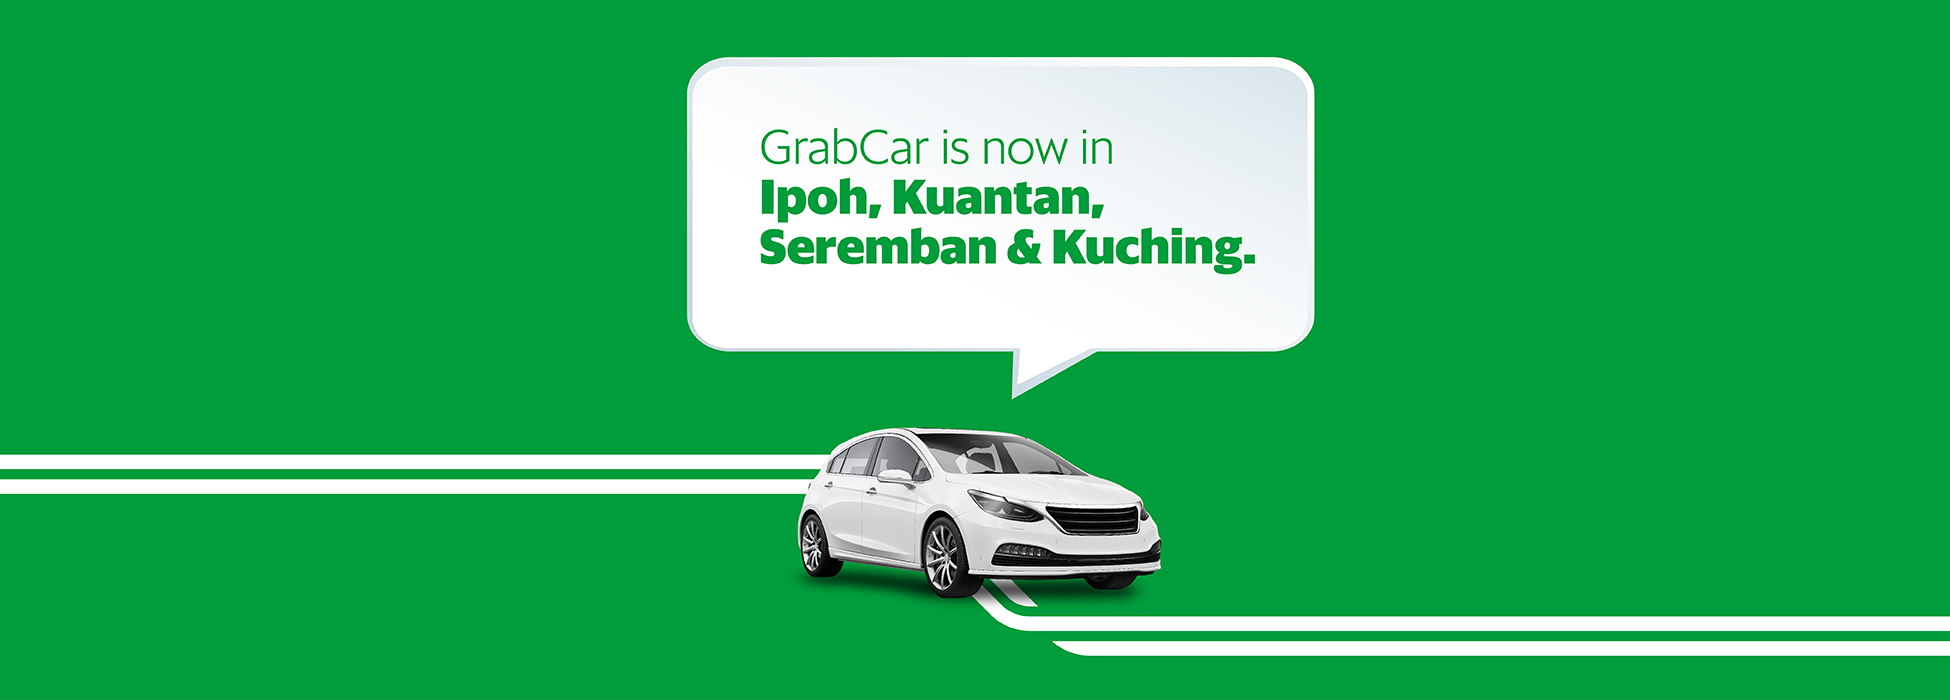 Grab Expands GrabCar Service and Now Available in Nine Major Cities